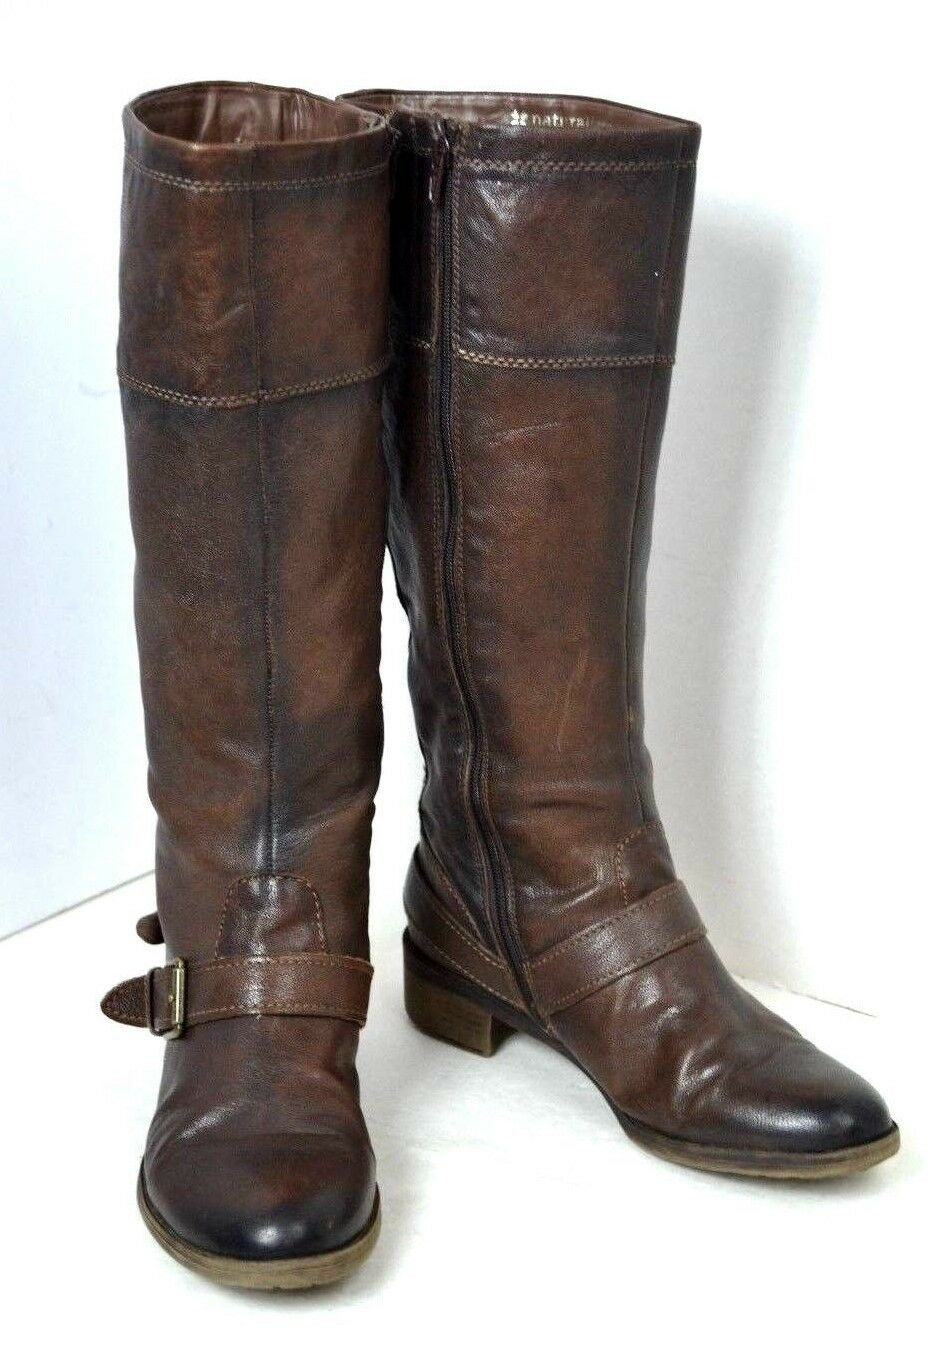 NATURALIZER BROWN GENUINE LEATHER BOOTS SIZE 9.5 M